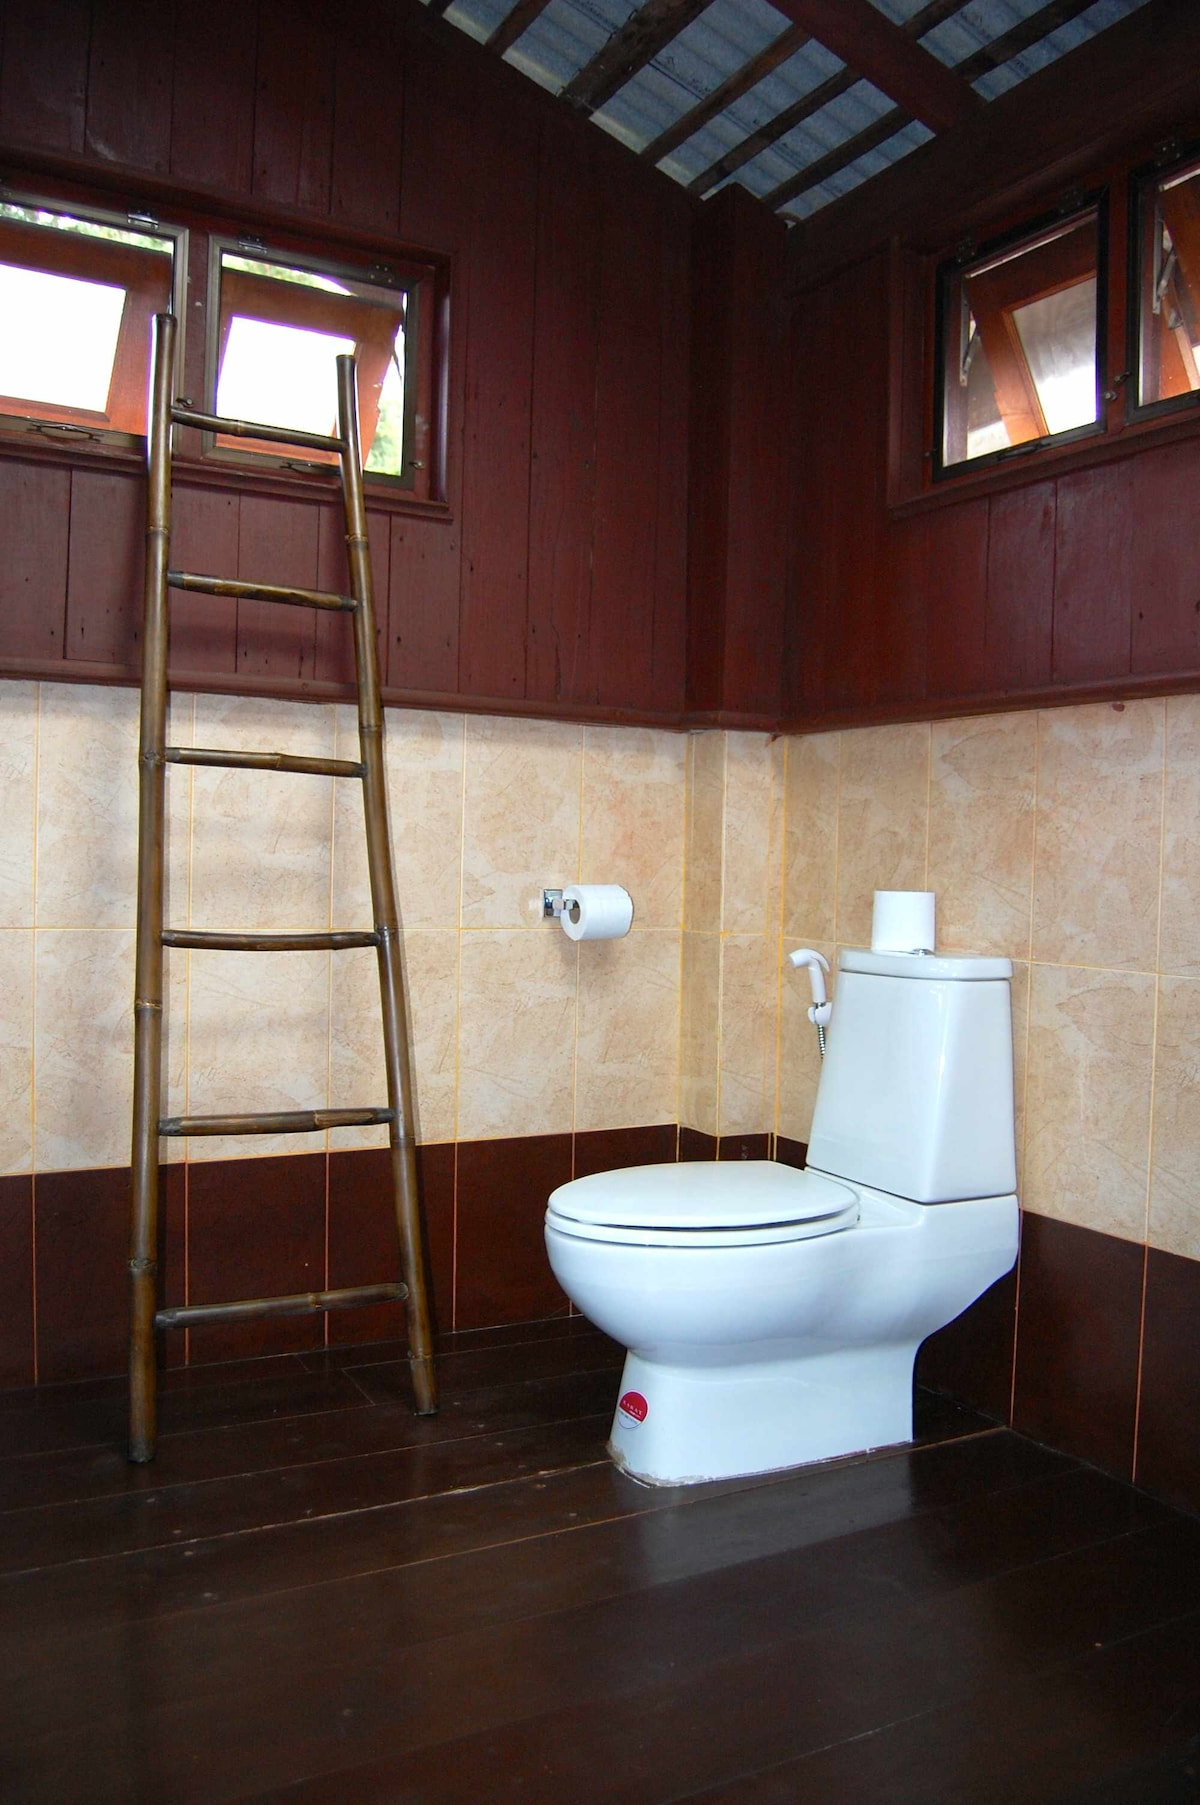 Private bathroom - Salle de bain privative